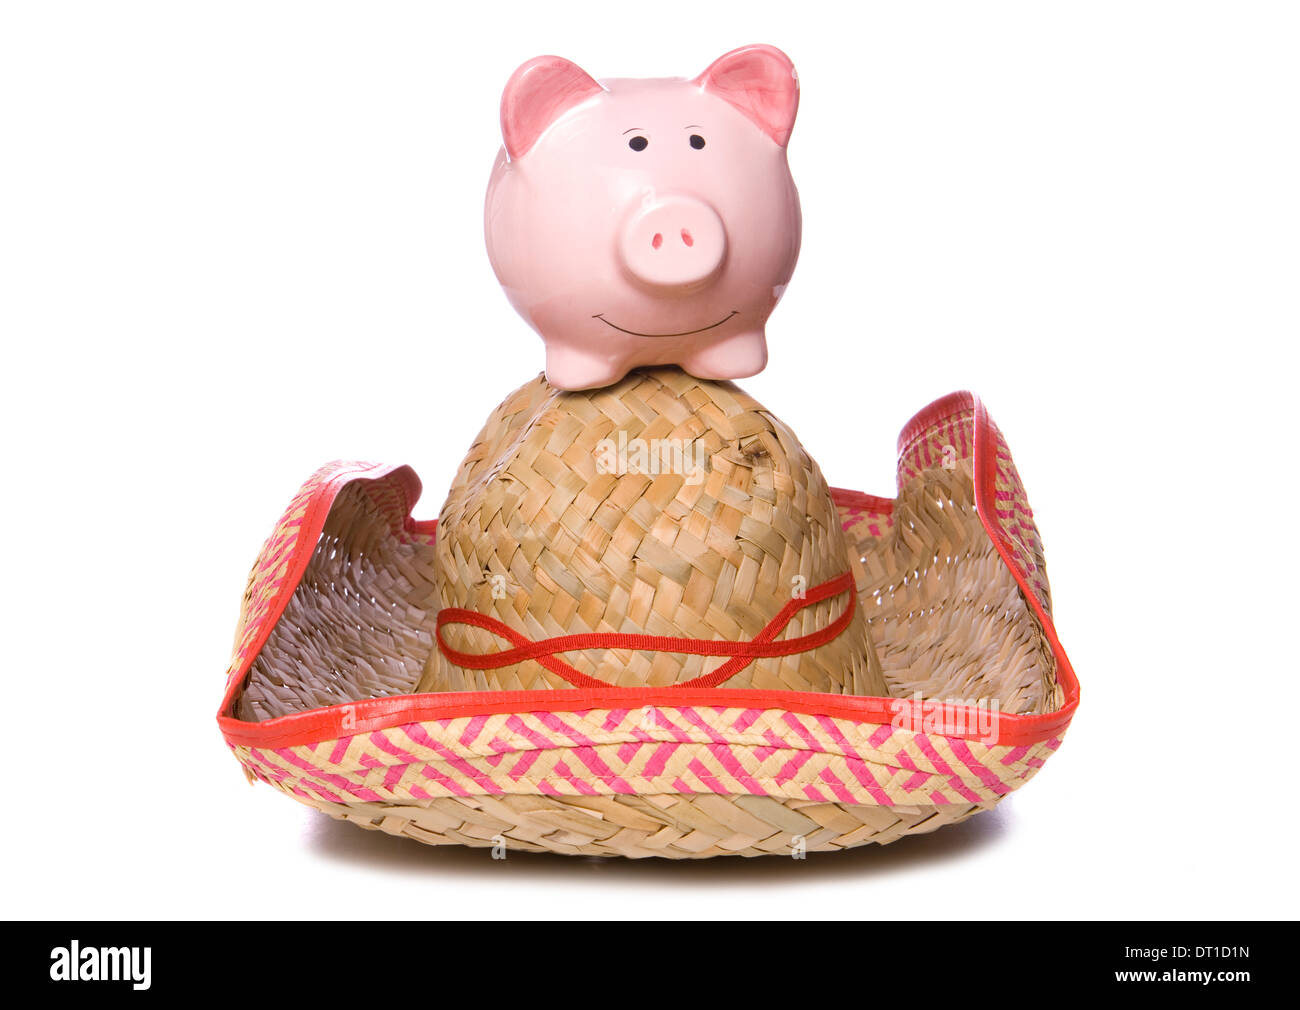 Holiday in Mexico piggy bank cutout - Stock Image